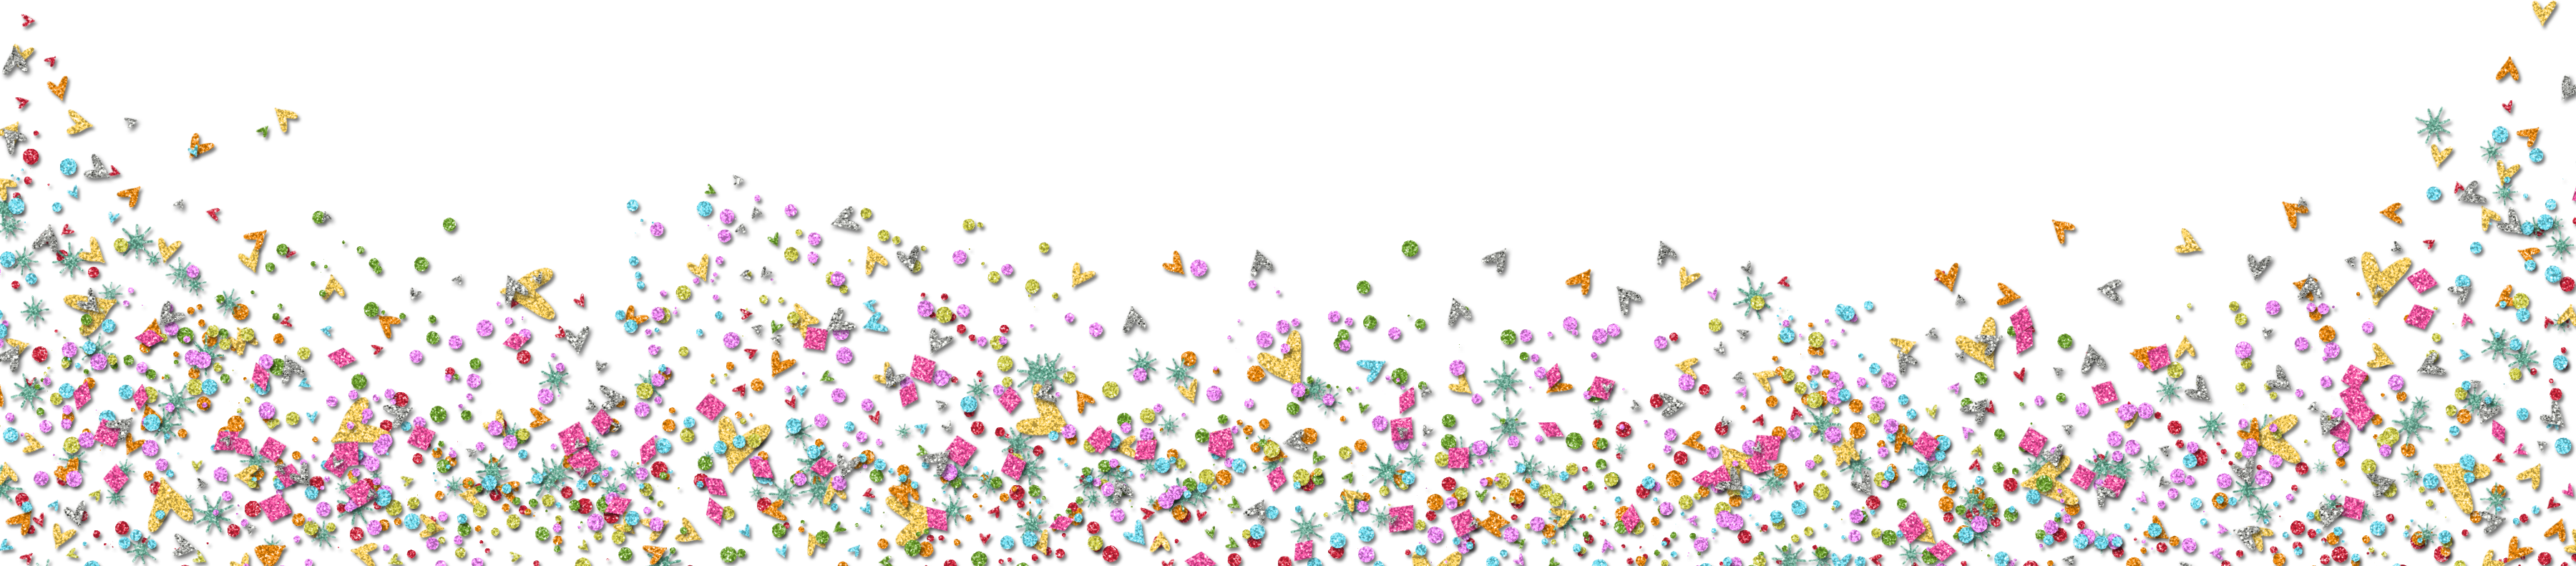 Png glitter. Download image all